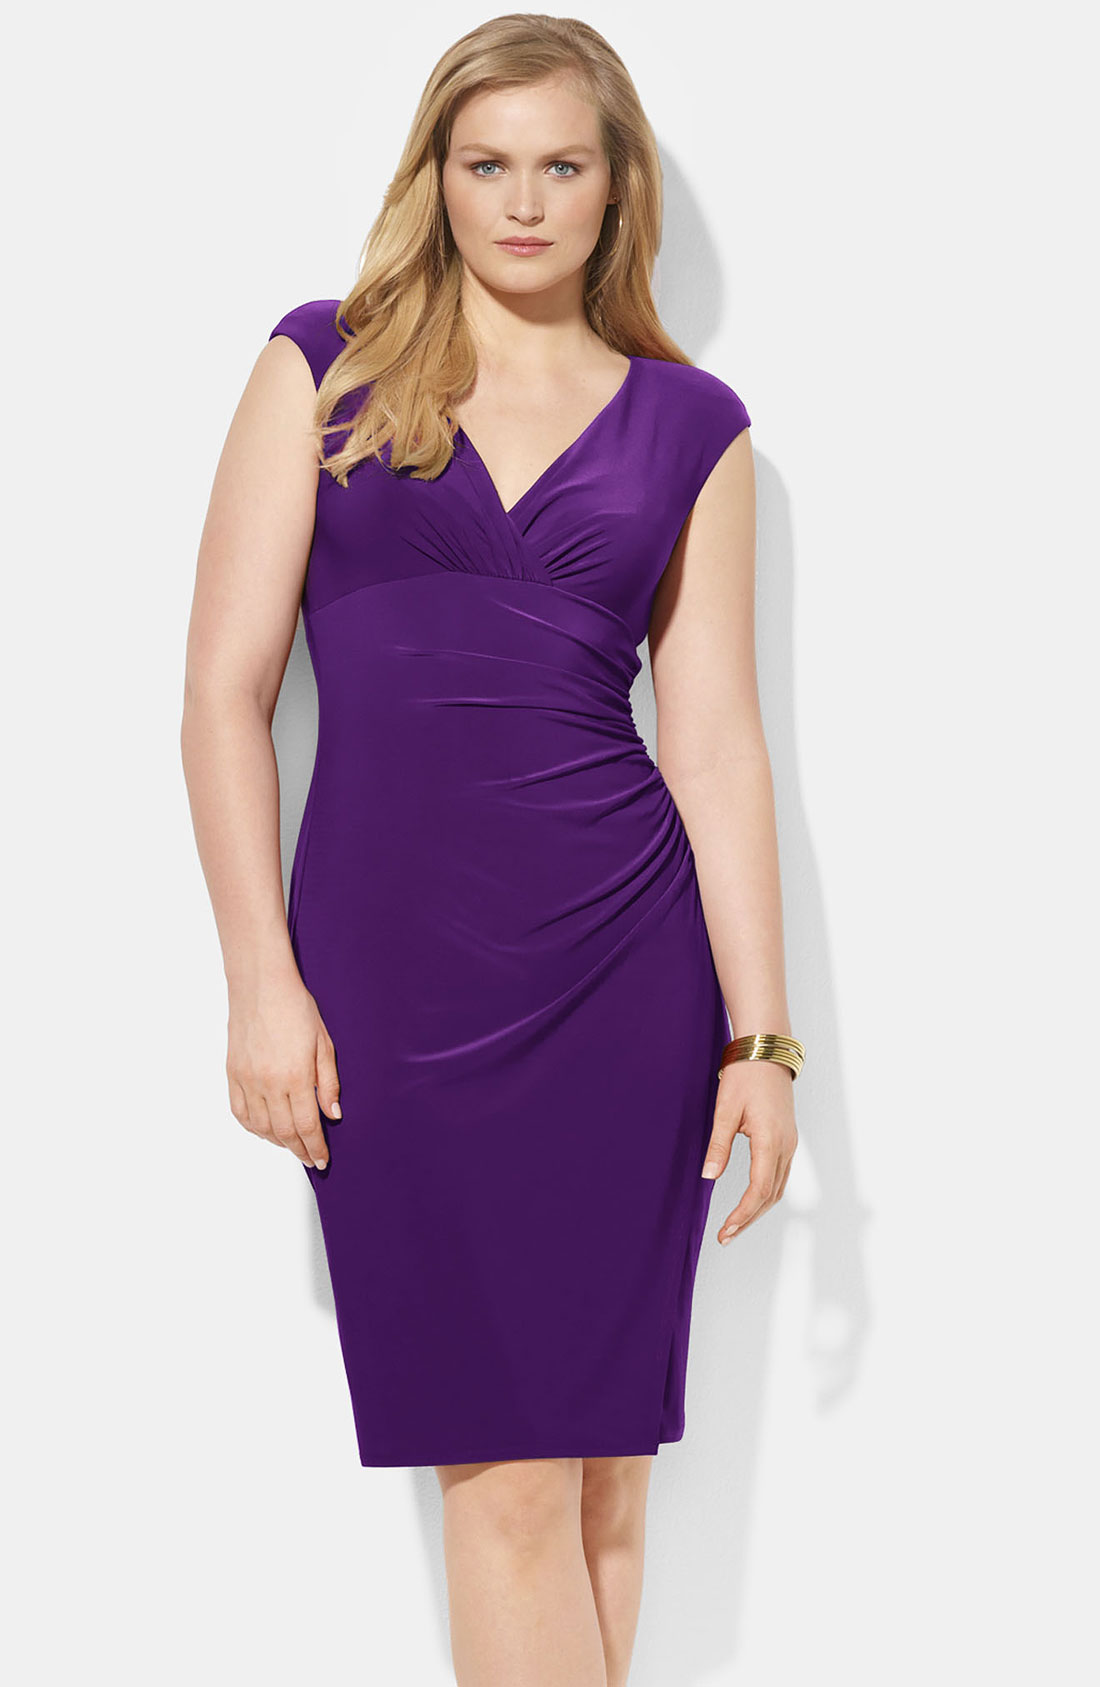 Lord And Taylor Plus Size Dresses